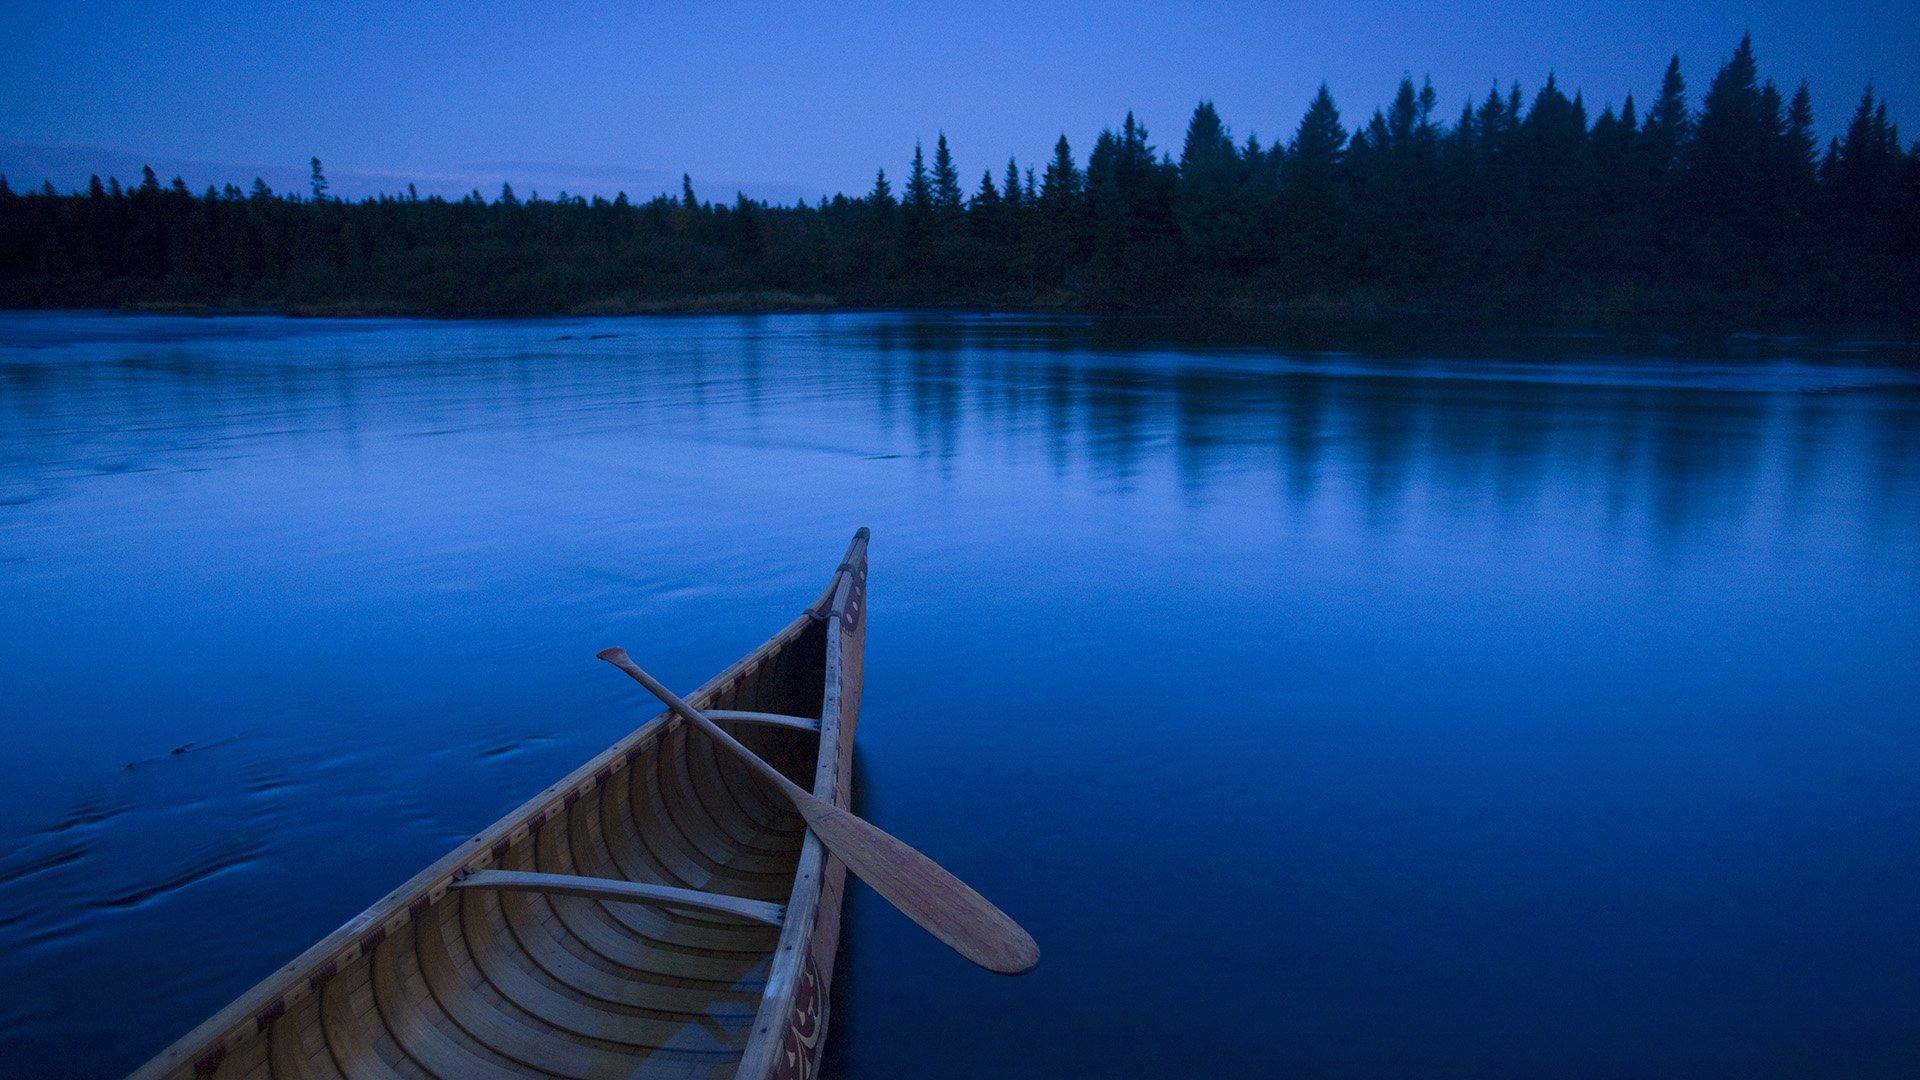 Canoe Hd Wallpaper Background Image 1920x1080 Id 437684 Wallpaper Abyss